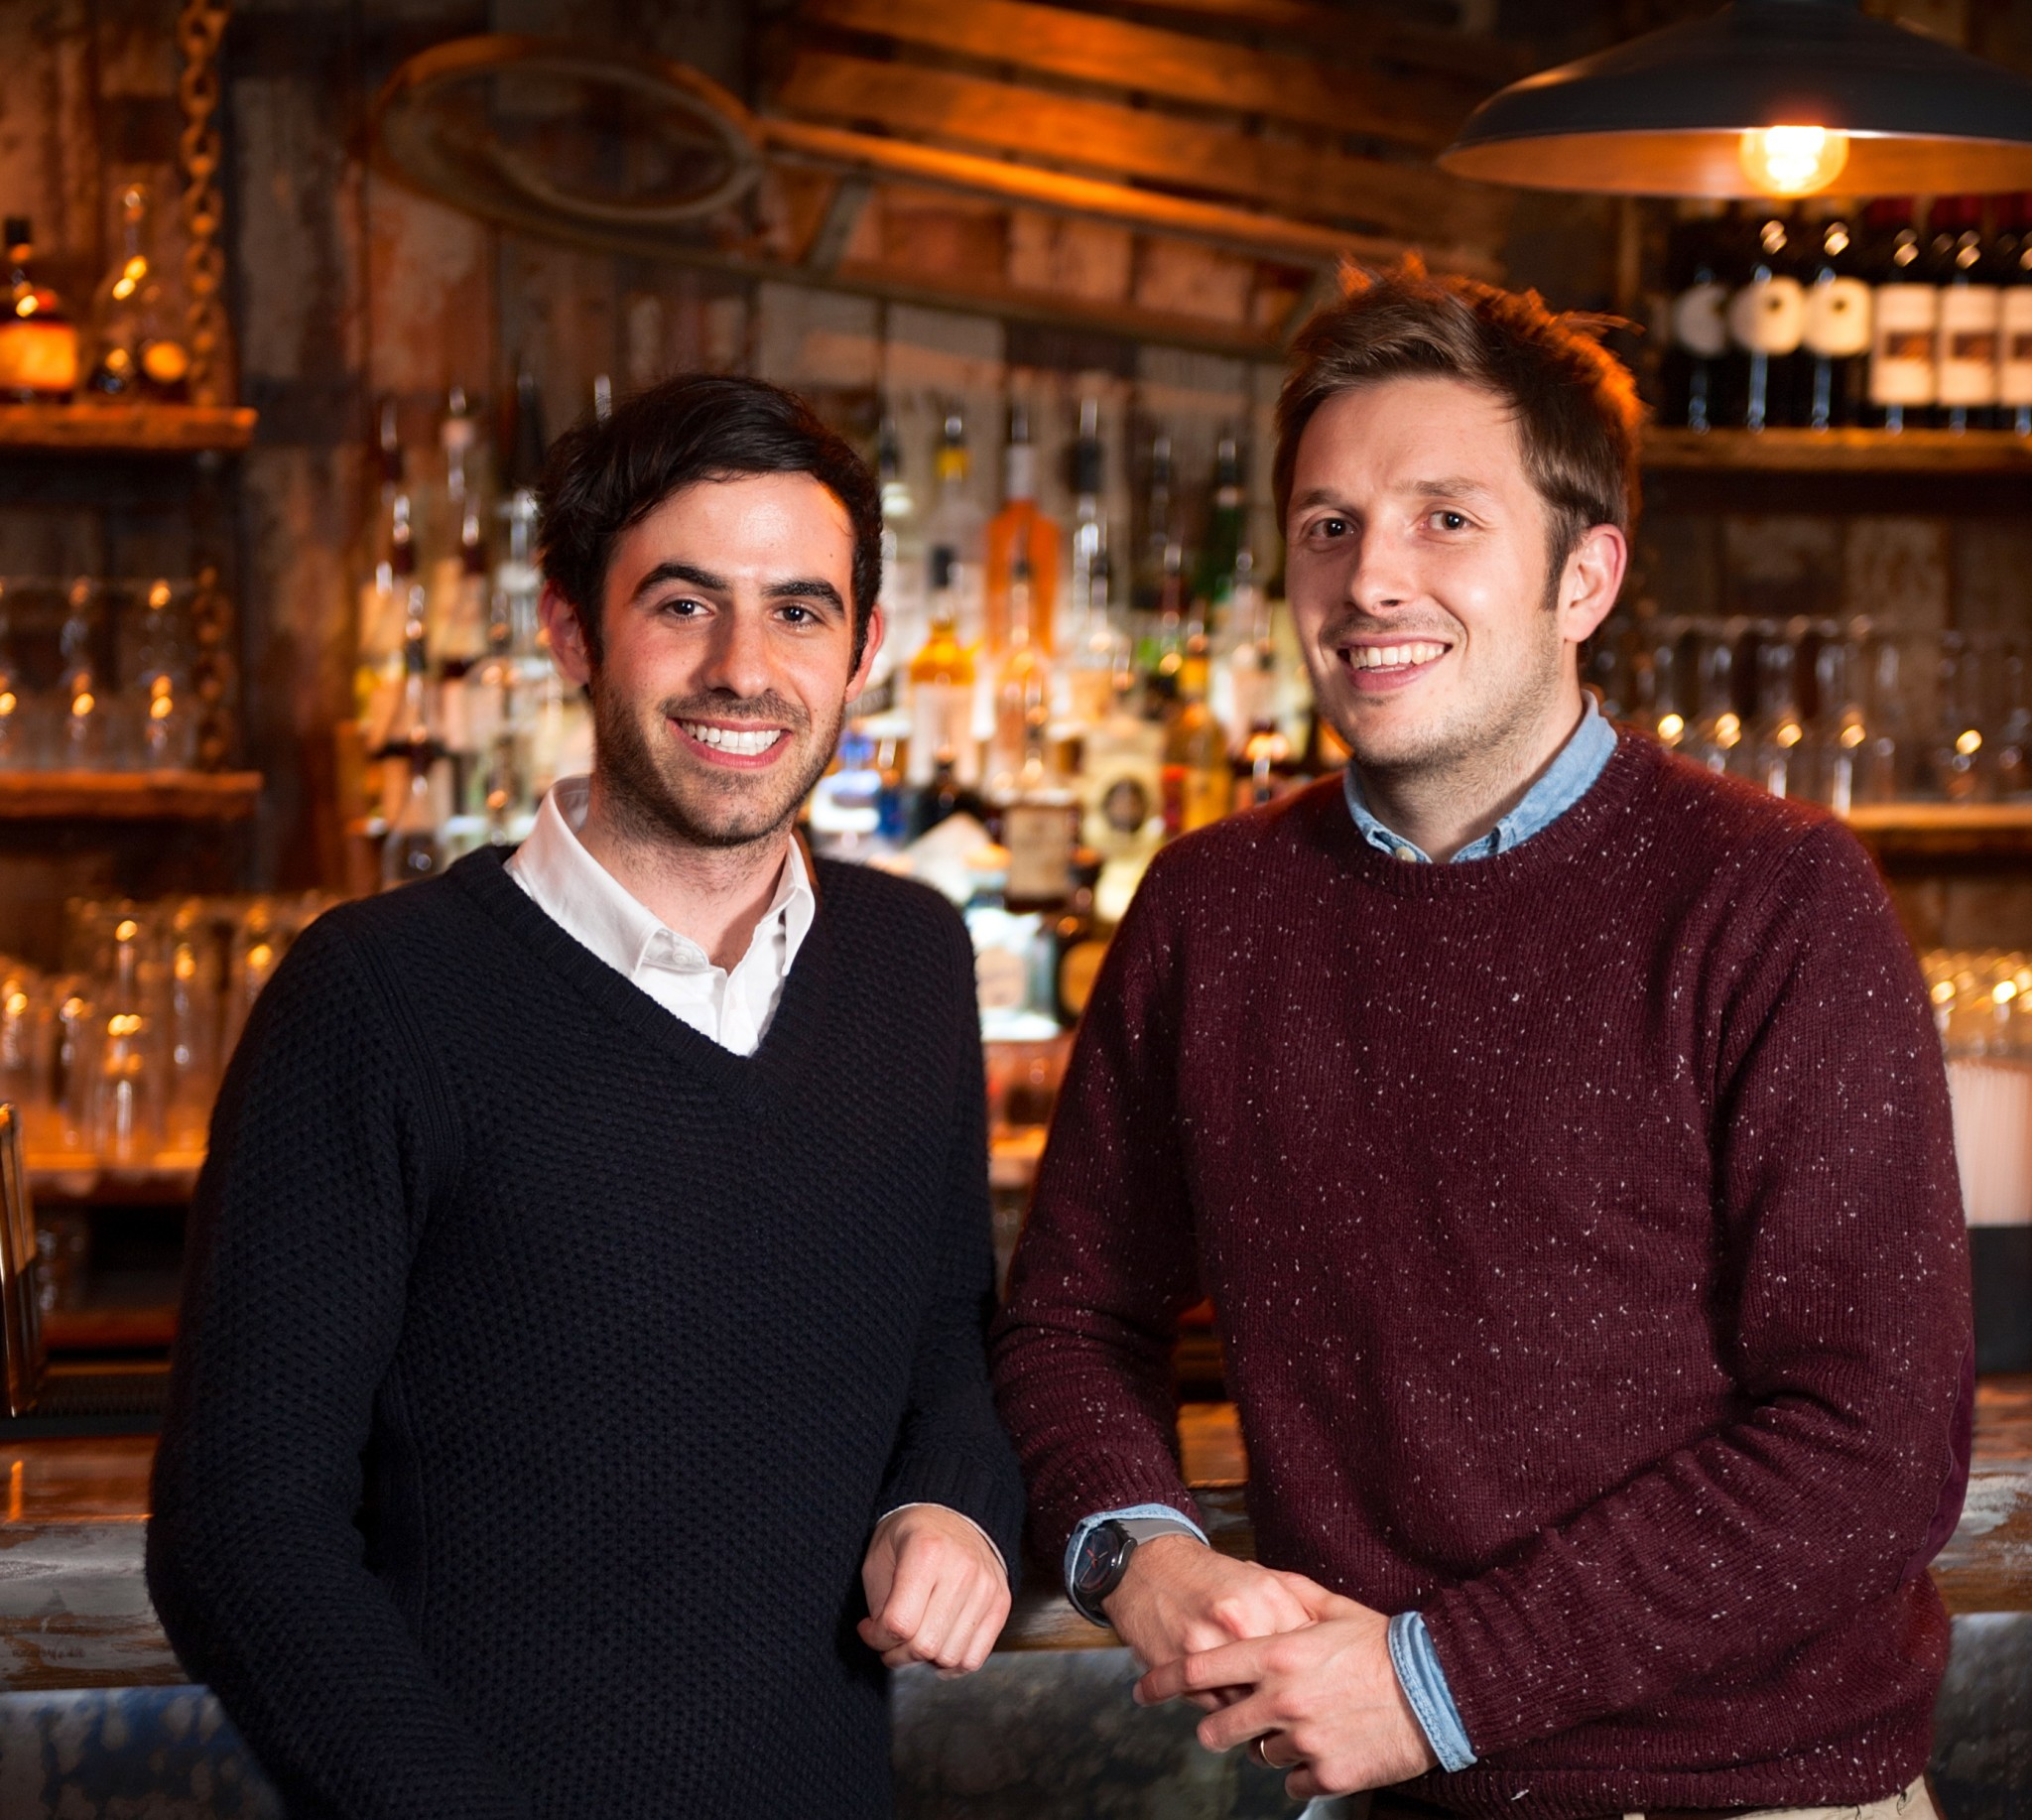 Interview with Nick Telson and Andrew Webster founders of Design My Night